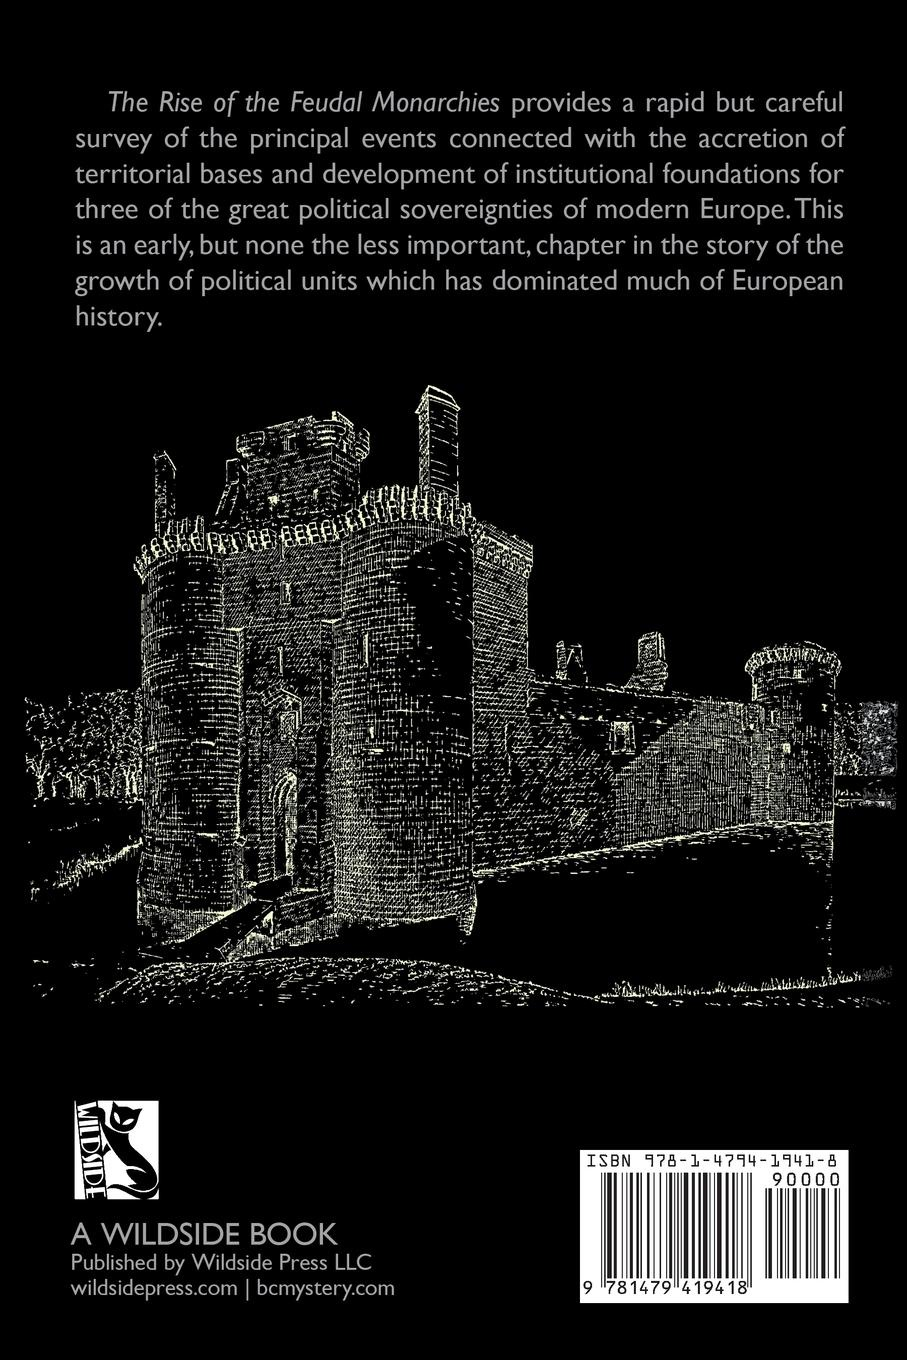 Sidney Painter The Rise of the Feudal Monarchies malcolm kemp extreme events robust portfolio construction in the presence of fat tails isbn 9780470976791